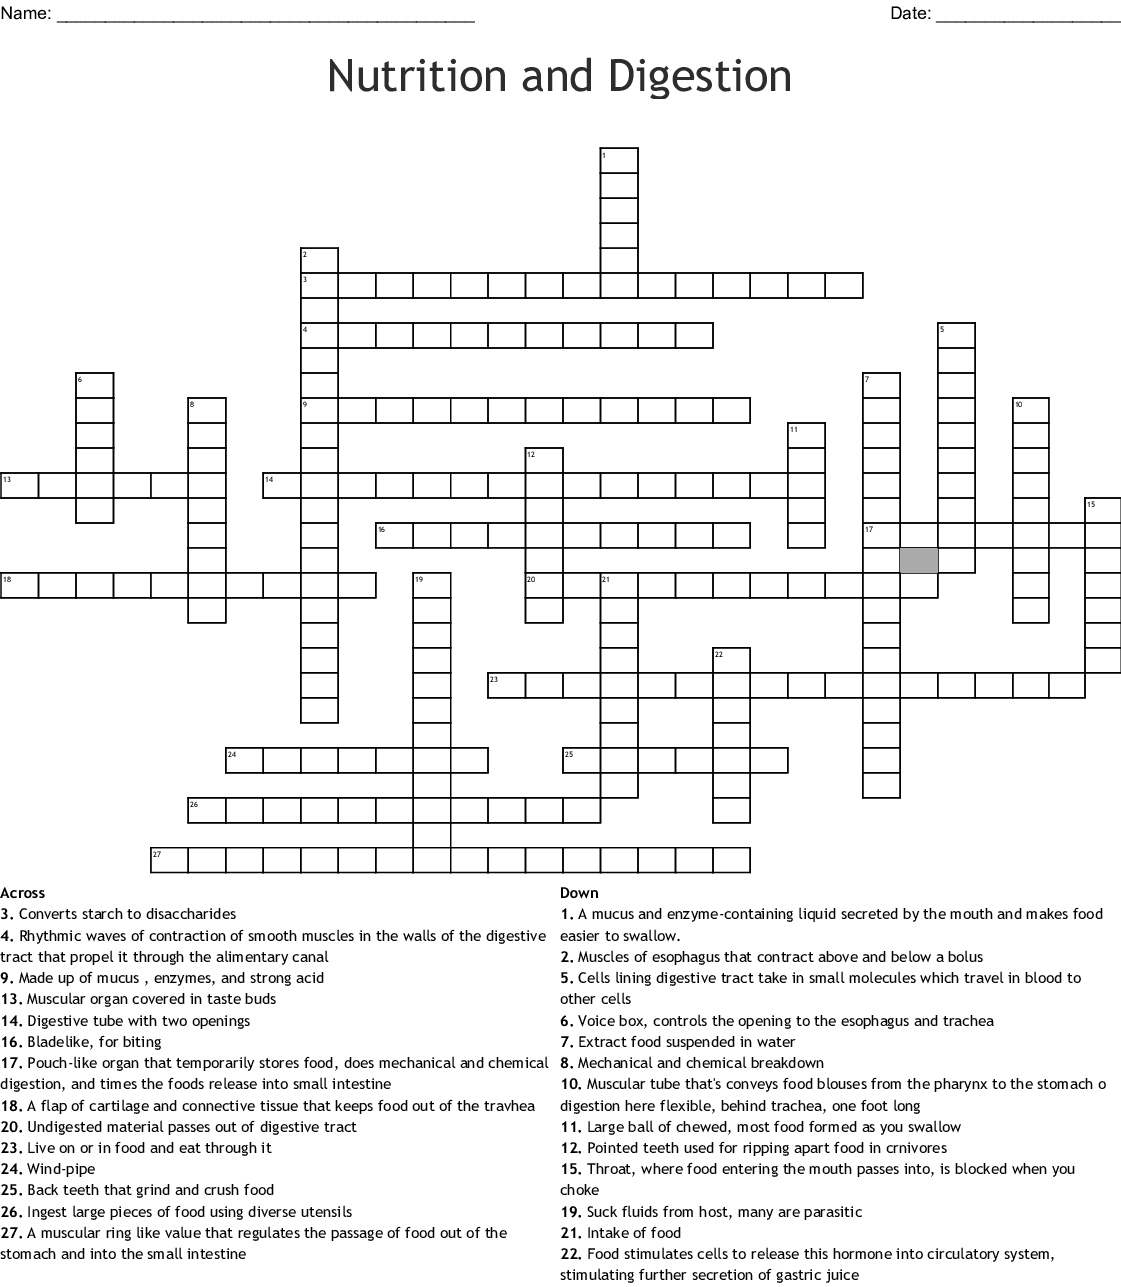 Nutrition And Digestion Crossword